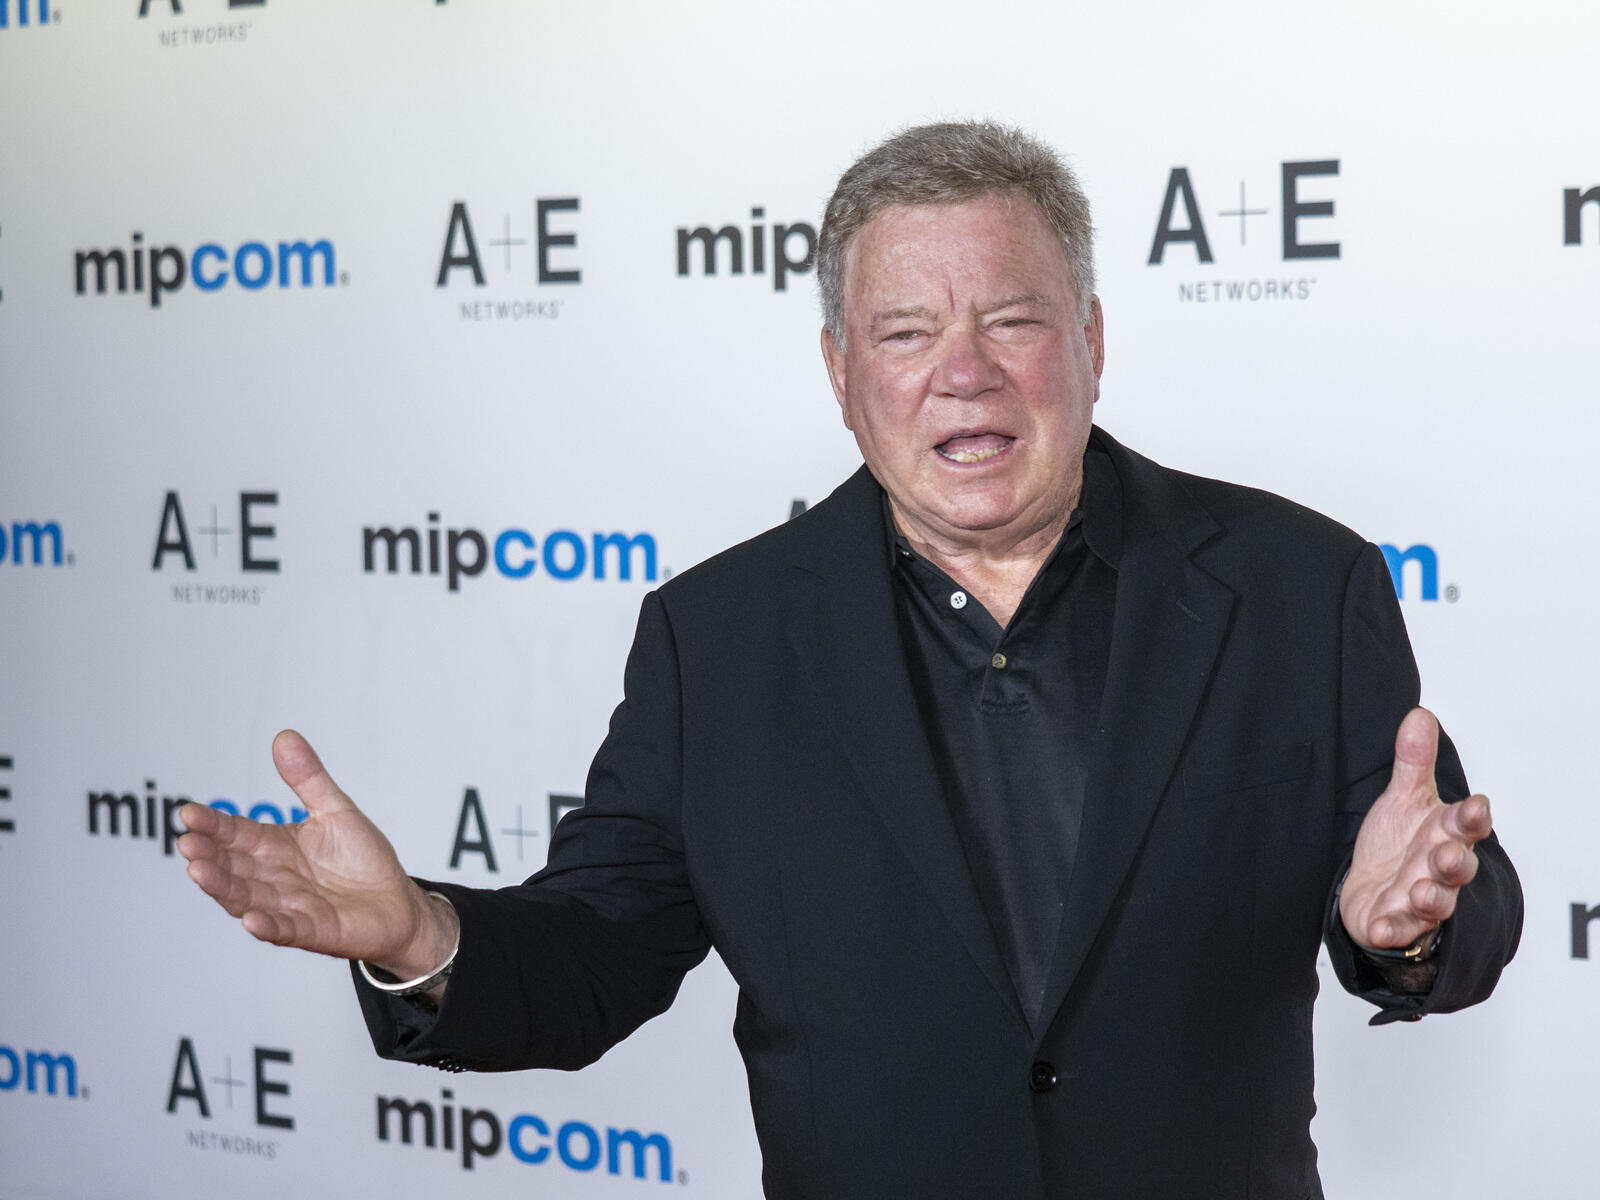 29: 10/14/21 - William Shatner Goes Full Captain Kirk & Rockets To Space With Blue Origin